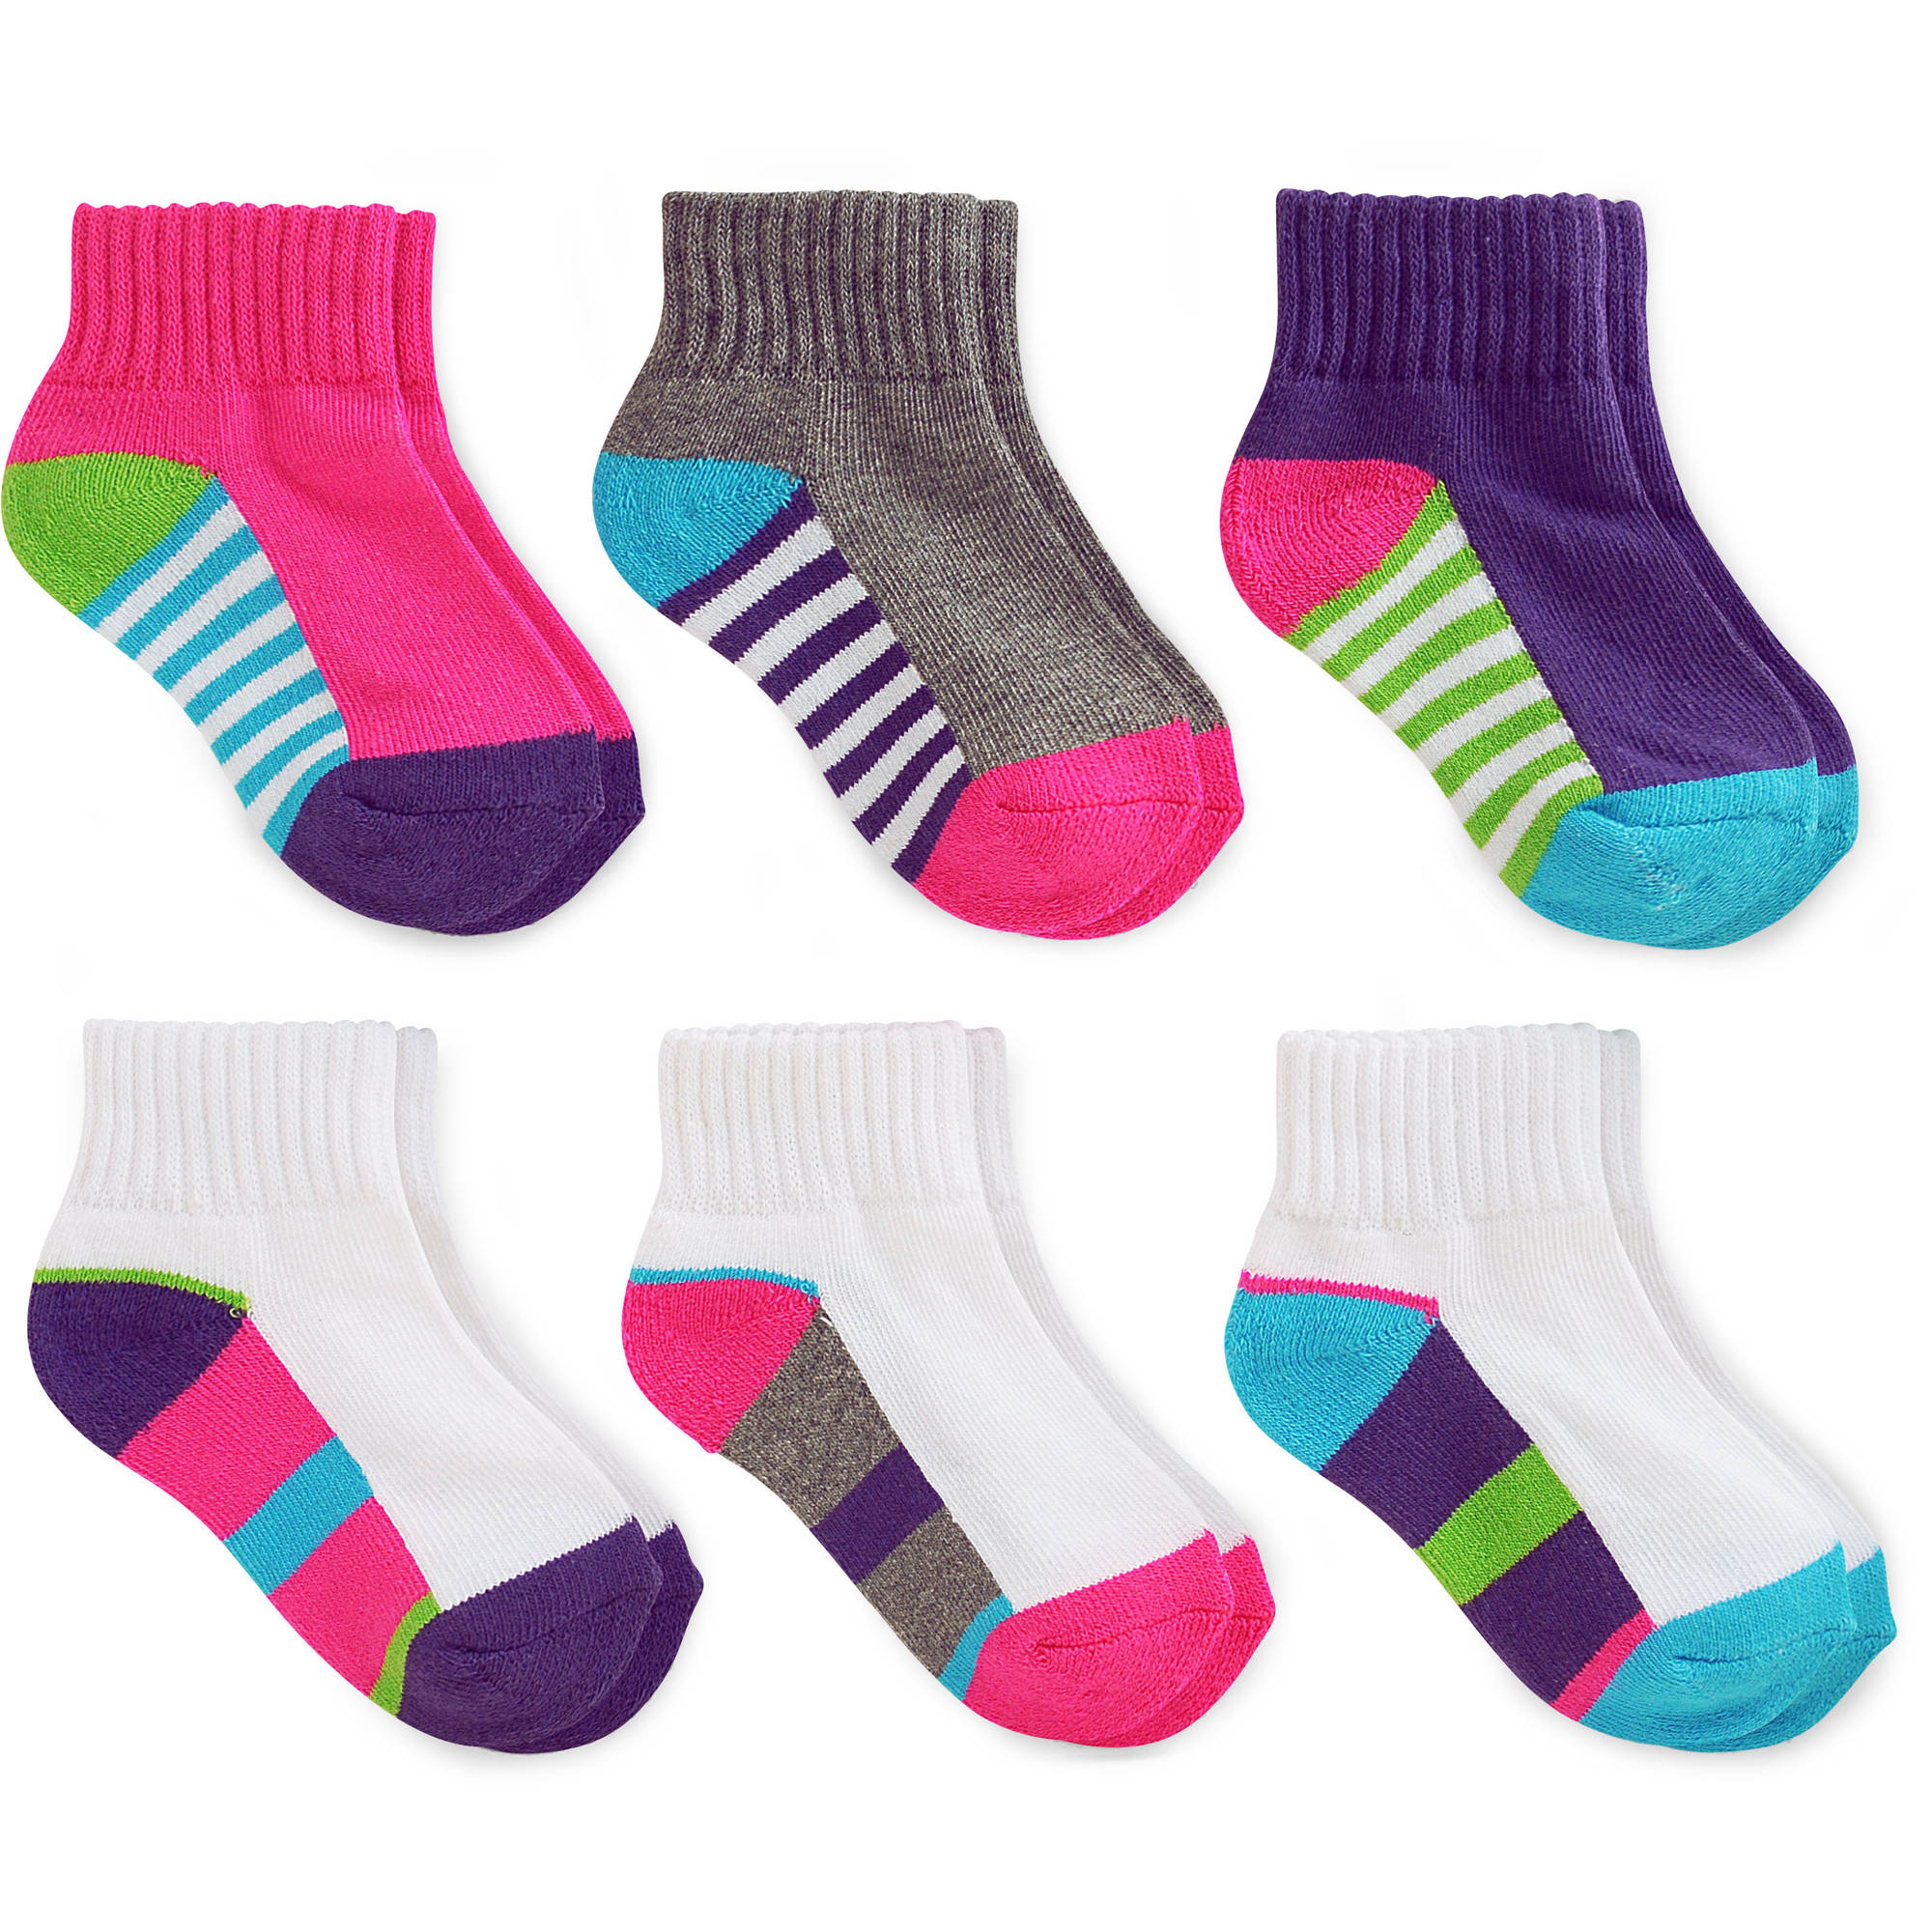 Garanimals Baby Toddler Girl Colored Ankle Socks Ages NB-5T, 6-Pack